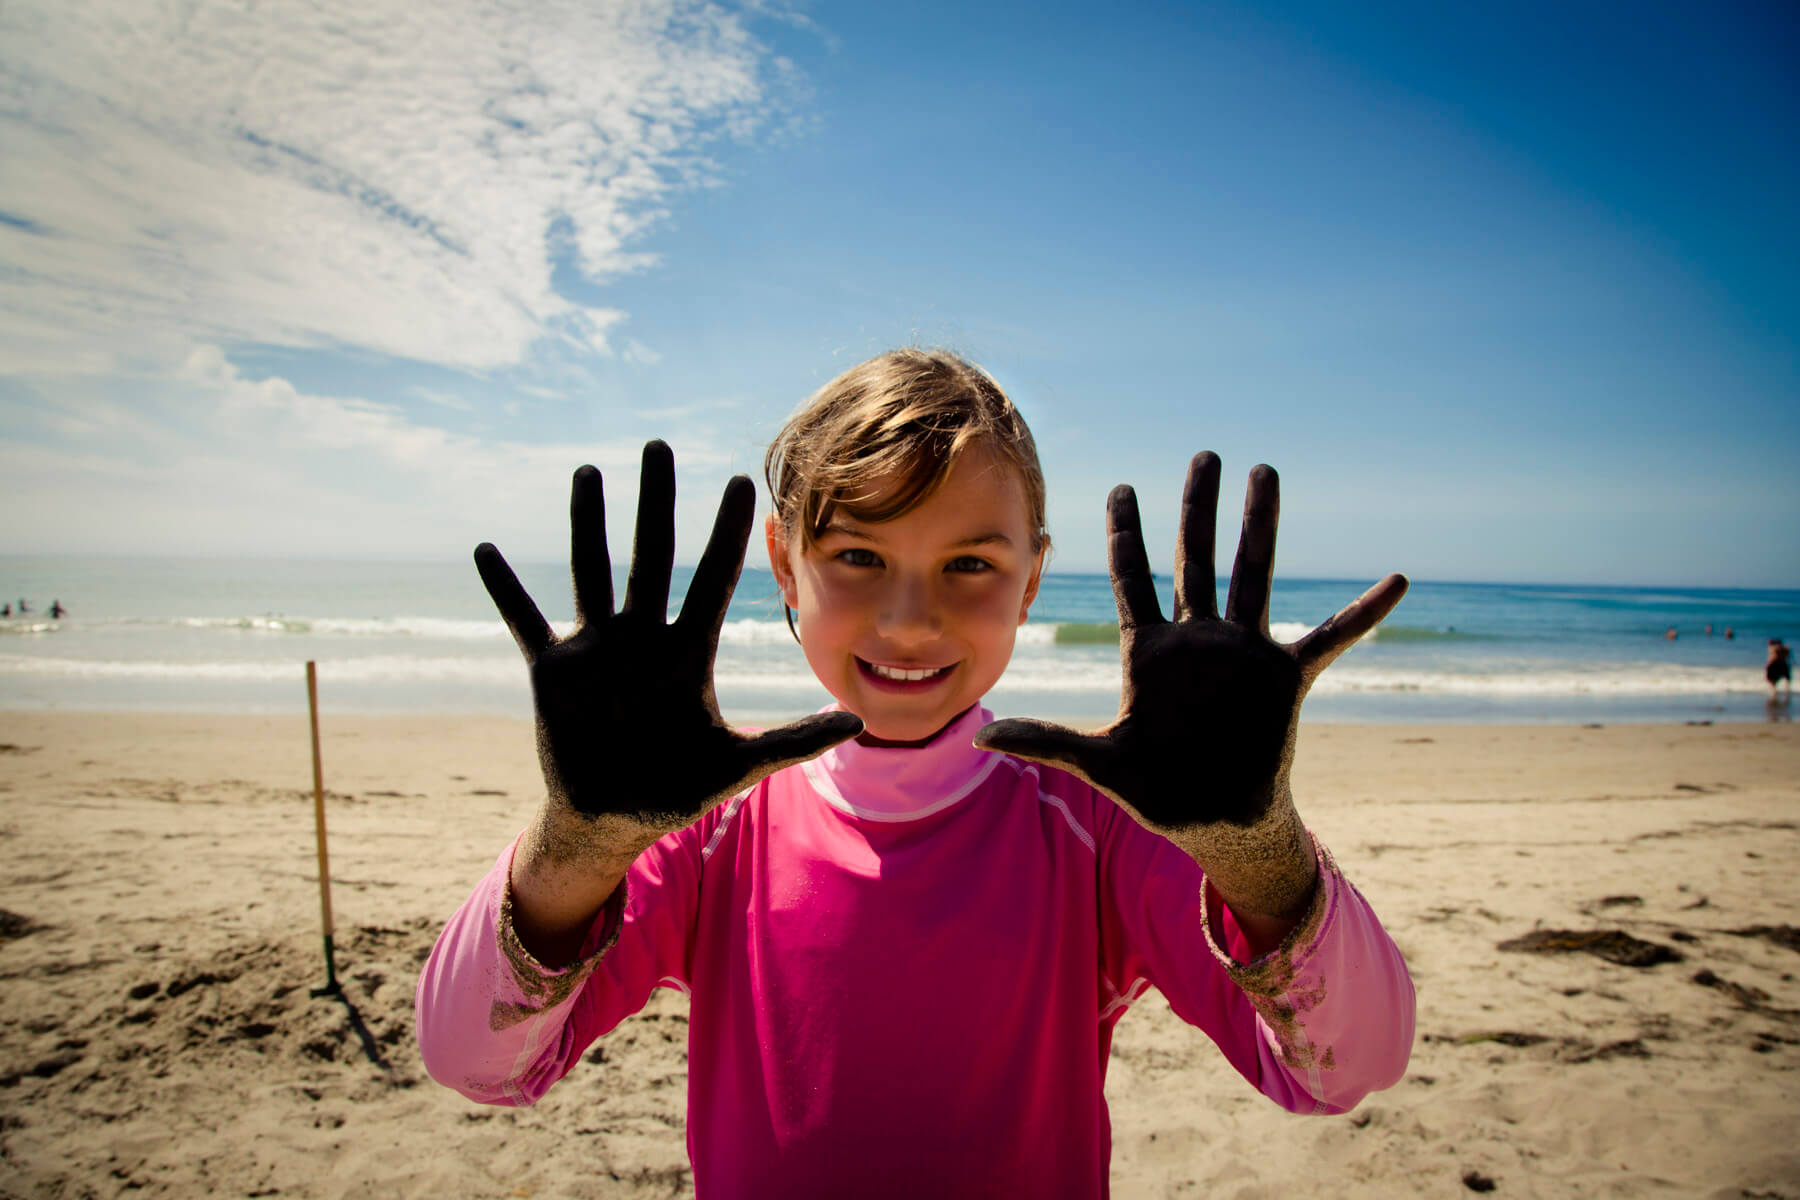 Devyn with her charcoal covered hands @ Haskell's Beach.